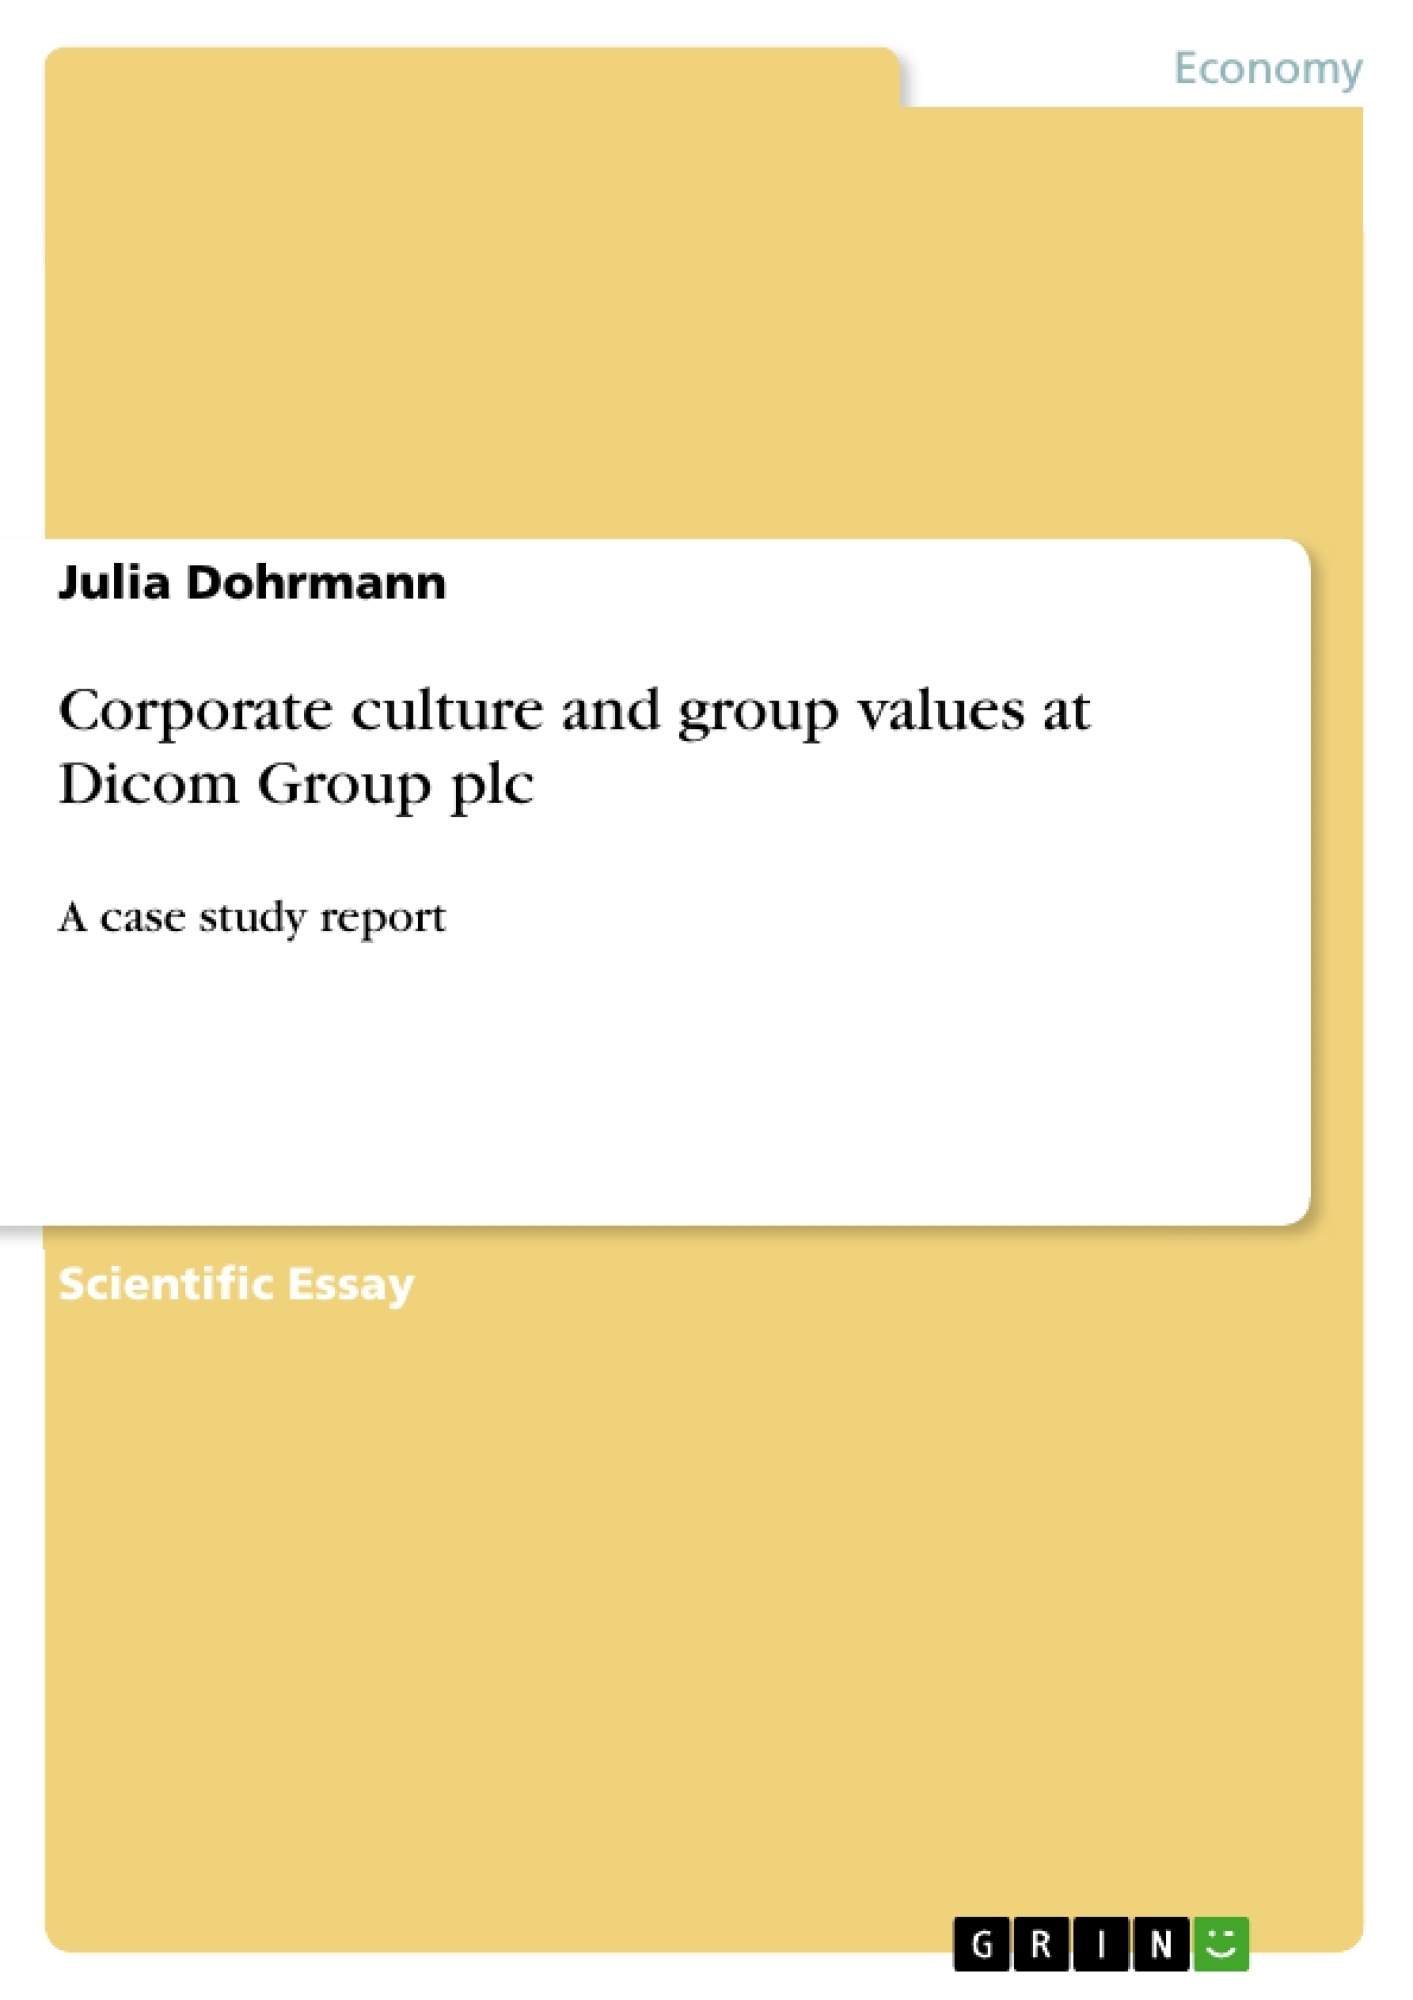 Title: Corporate culture and group values at Dicom Group plc